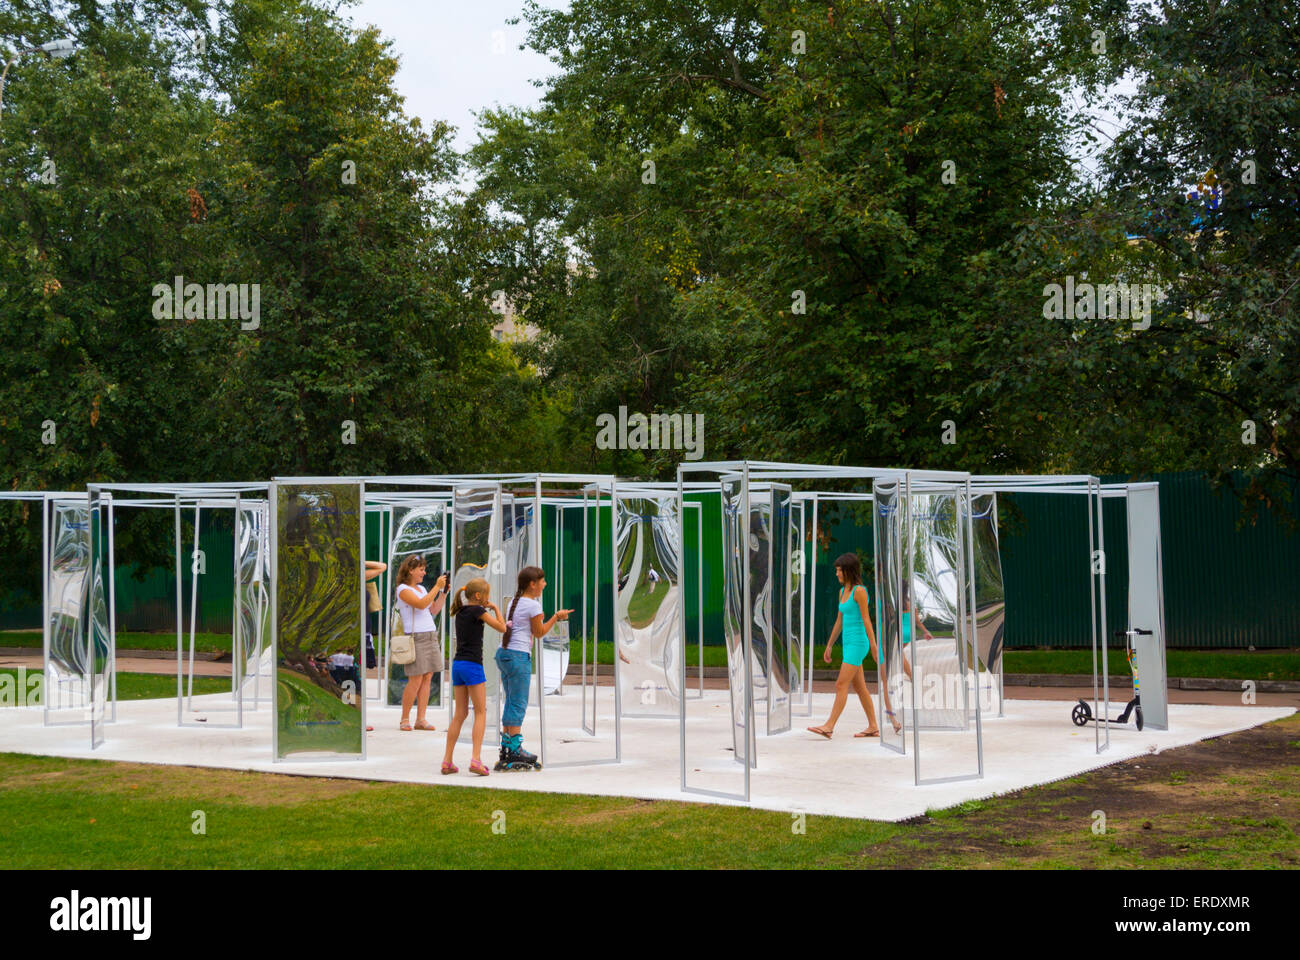 Mirror maze, Gorky Park, Moscow, Russia, Europe - Stock Image